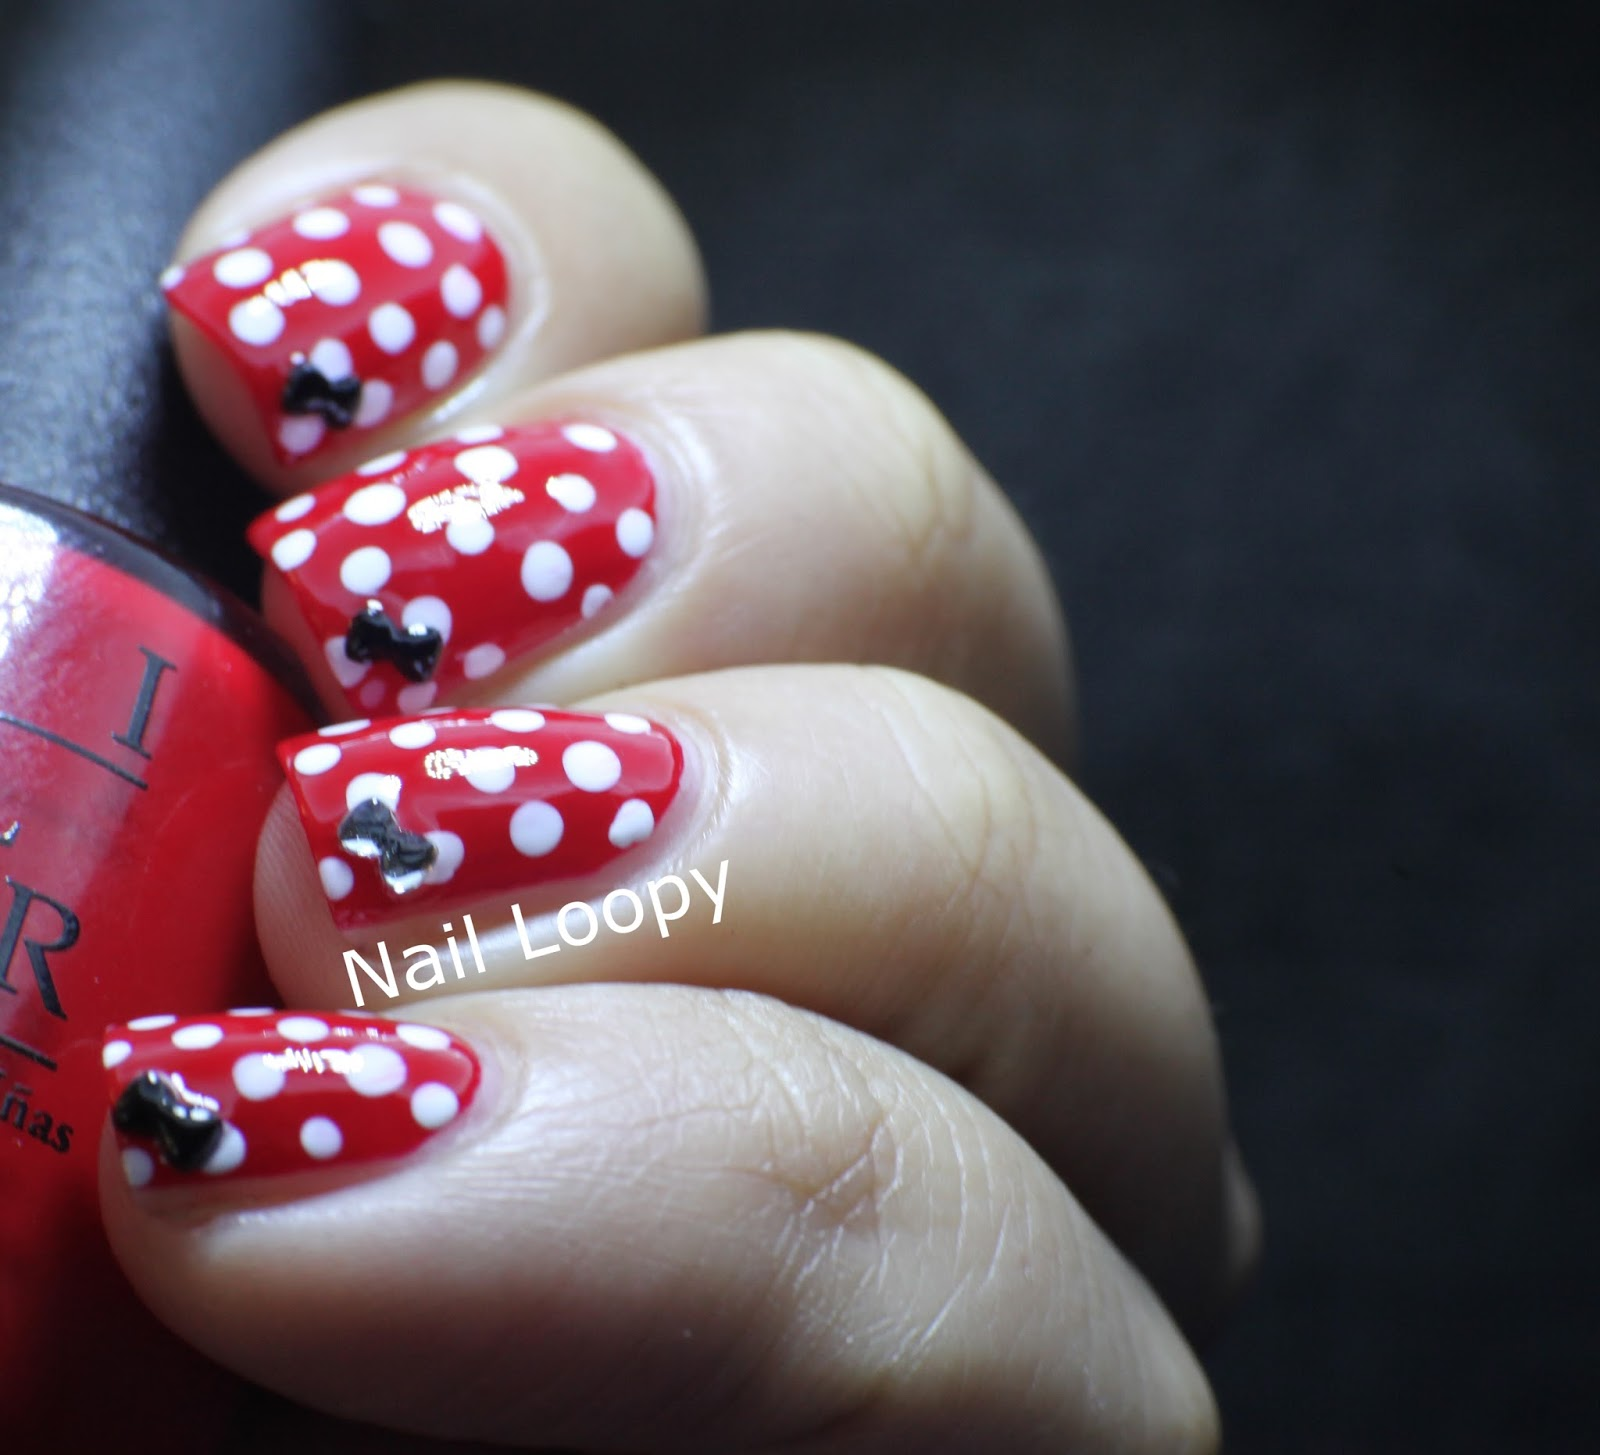 Minnie Mouse Nails: Nail Loopy: MINNIE MOUSE NAILS WITH BOW STUDS